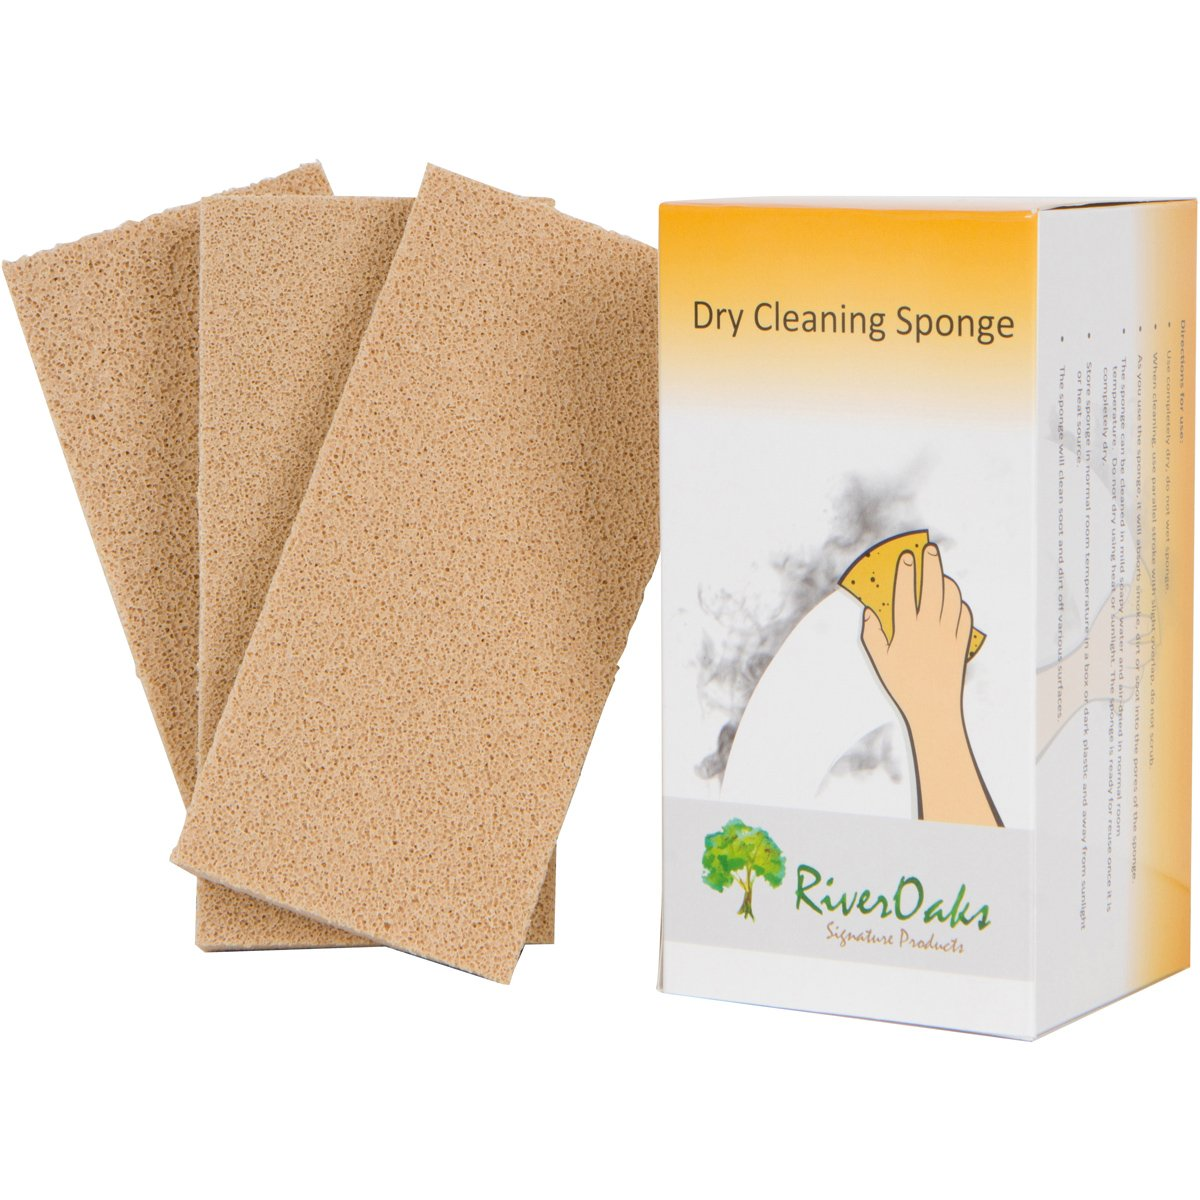 Dry Cleaning Soot Remover Sponge - (3-Pack) for Smoke, Soot, Dust and Dirt Removal